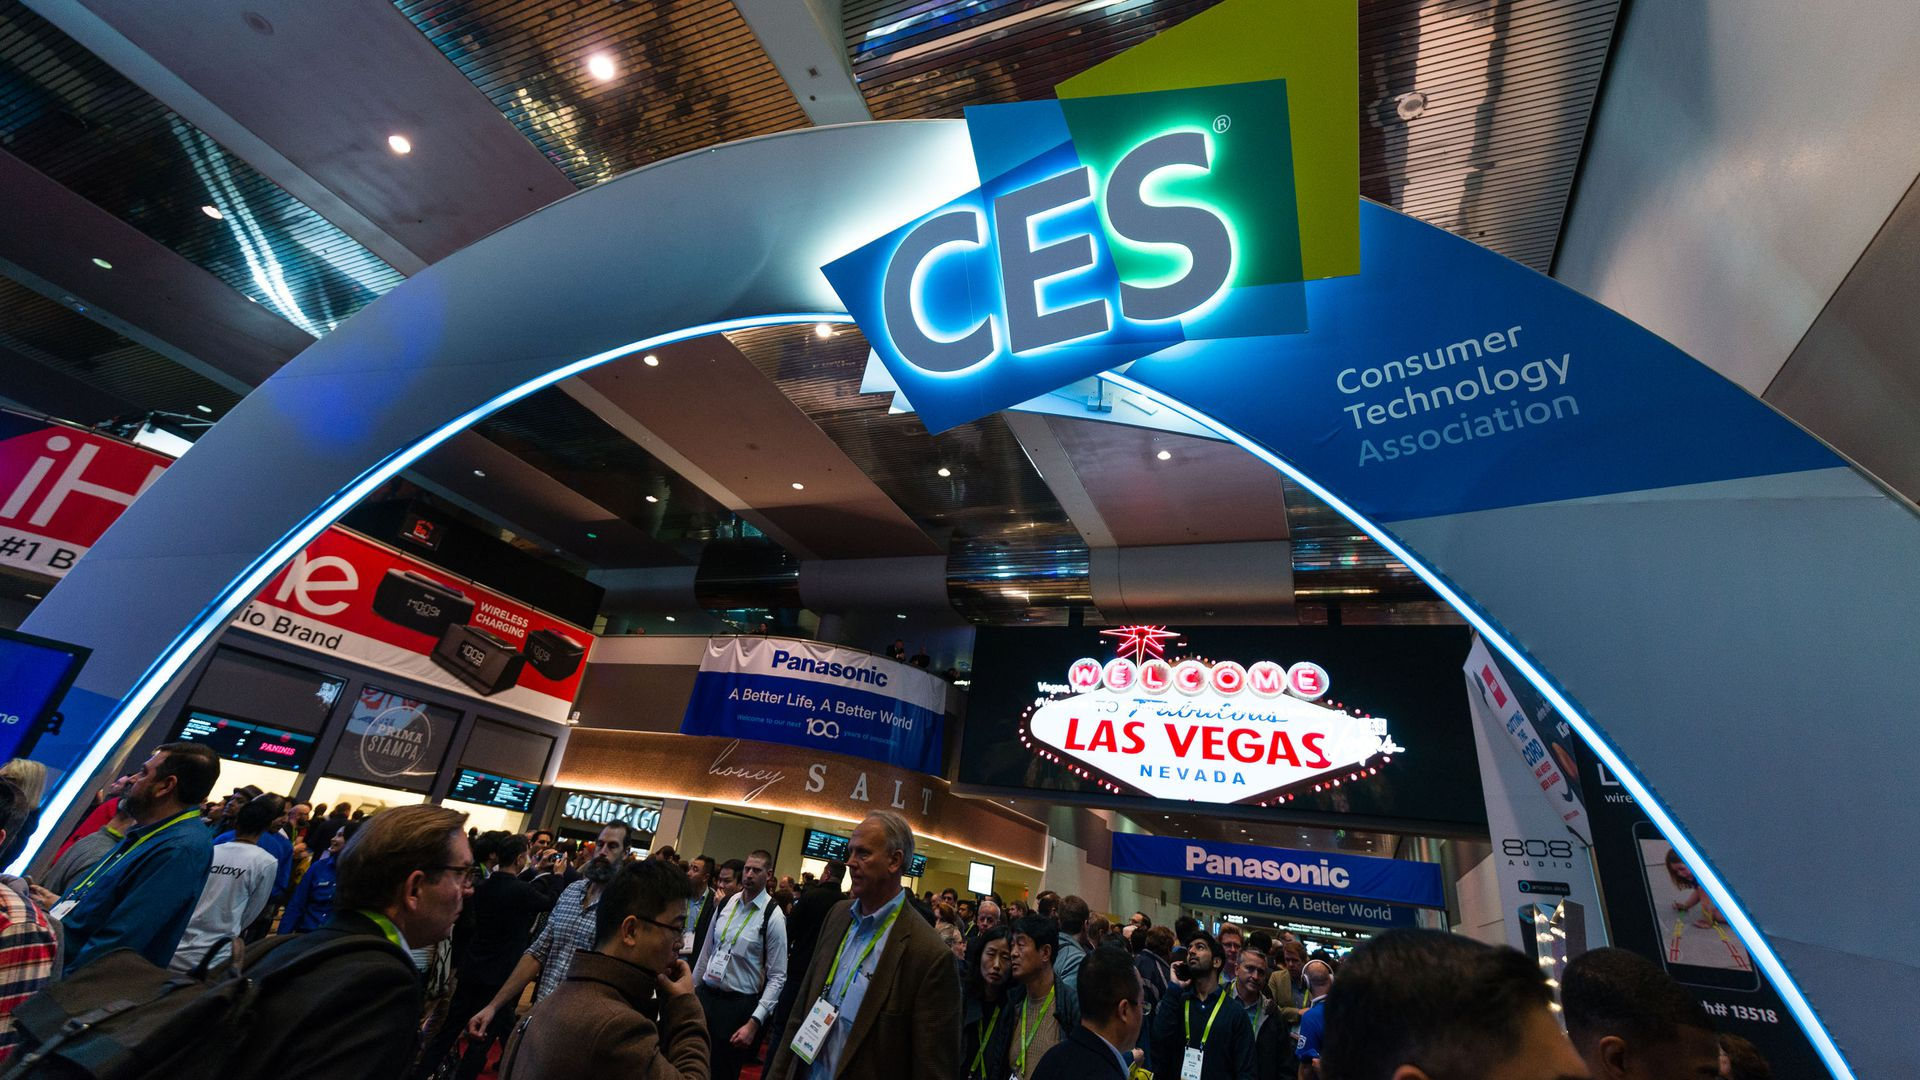 The show floor at CES 2018.